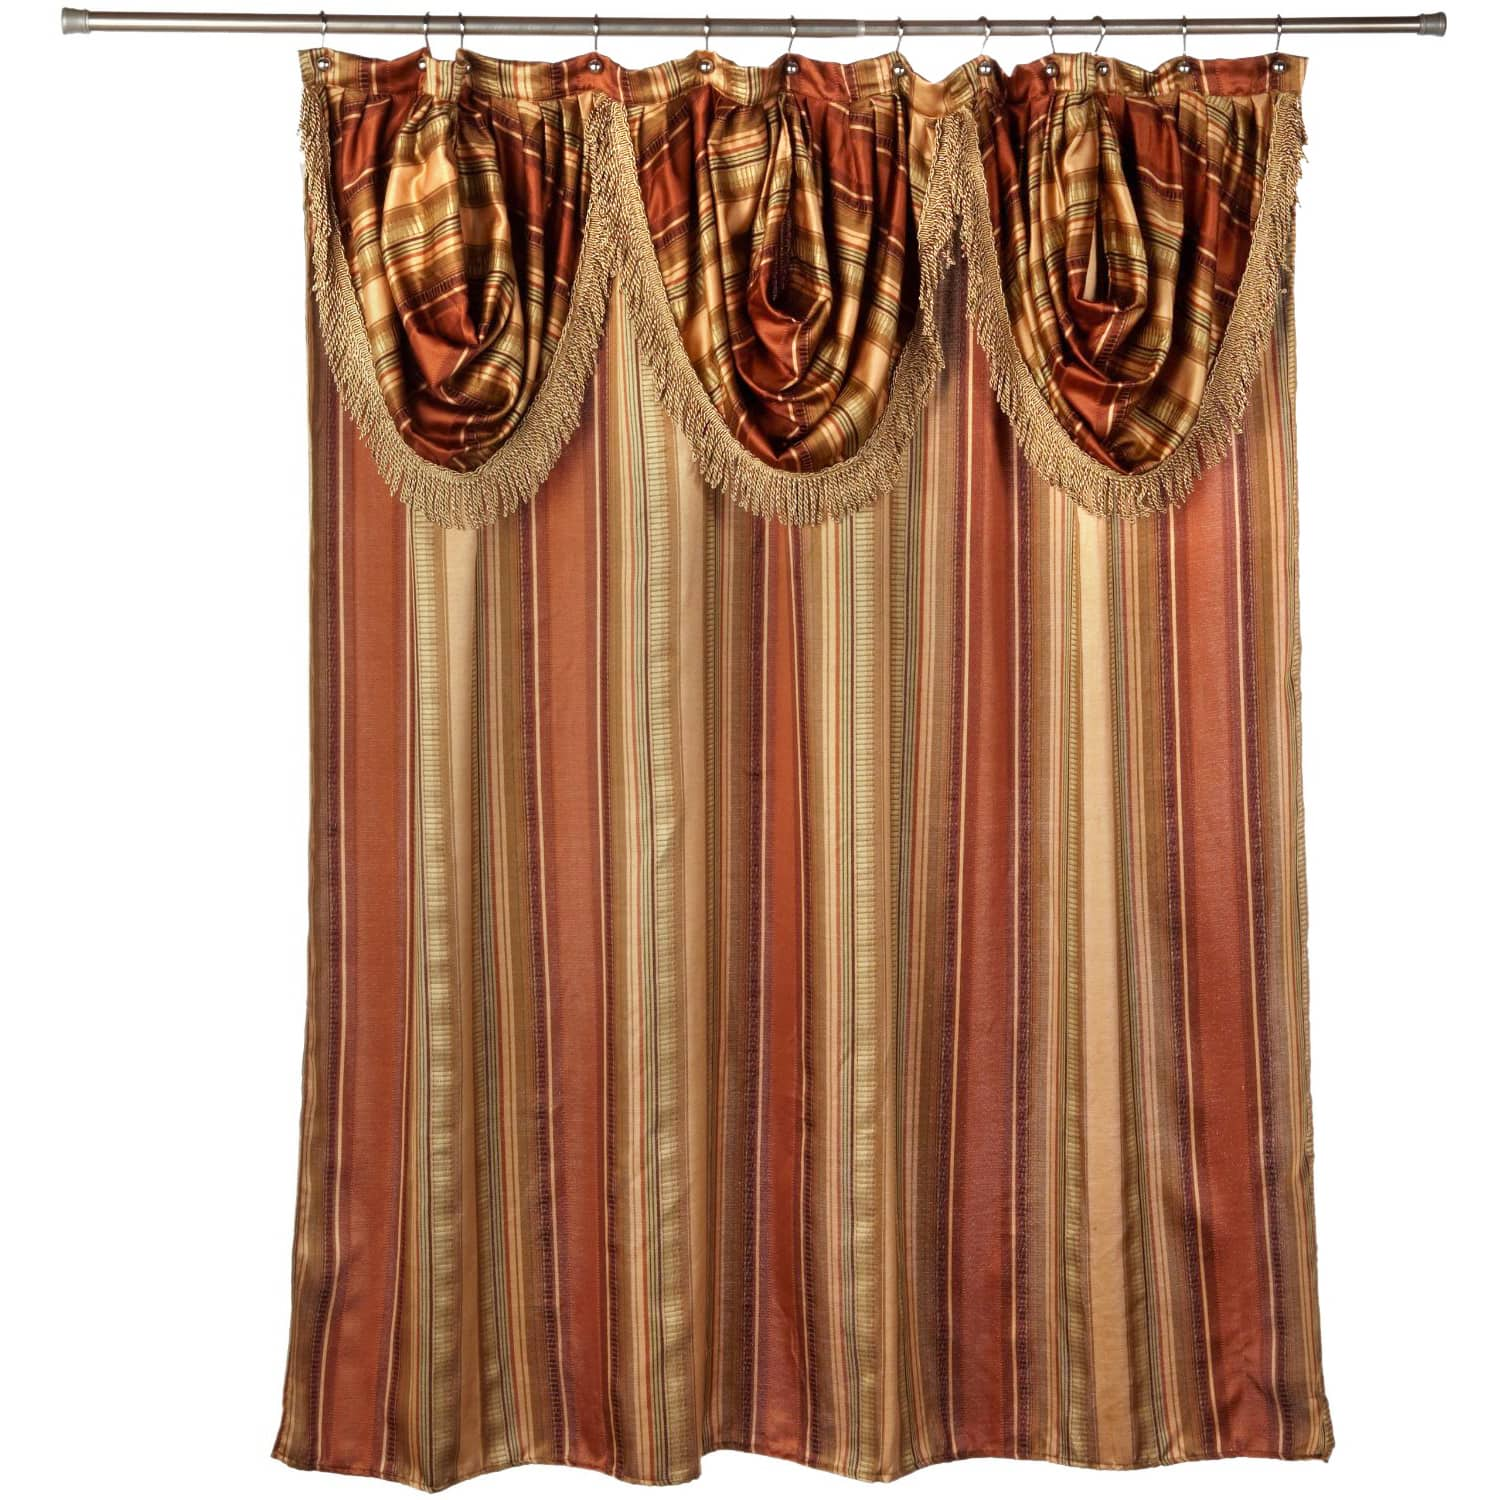 no p curtains buy velvet sheer velvetno dark valance green